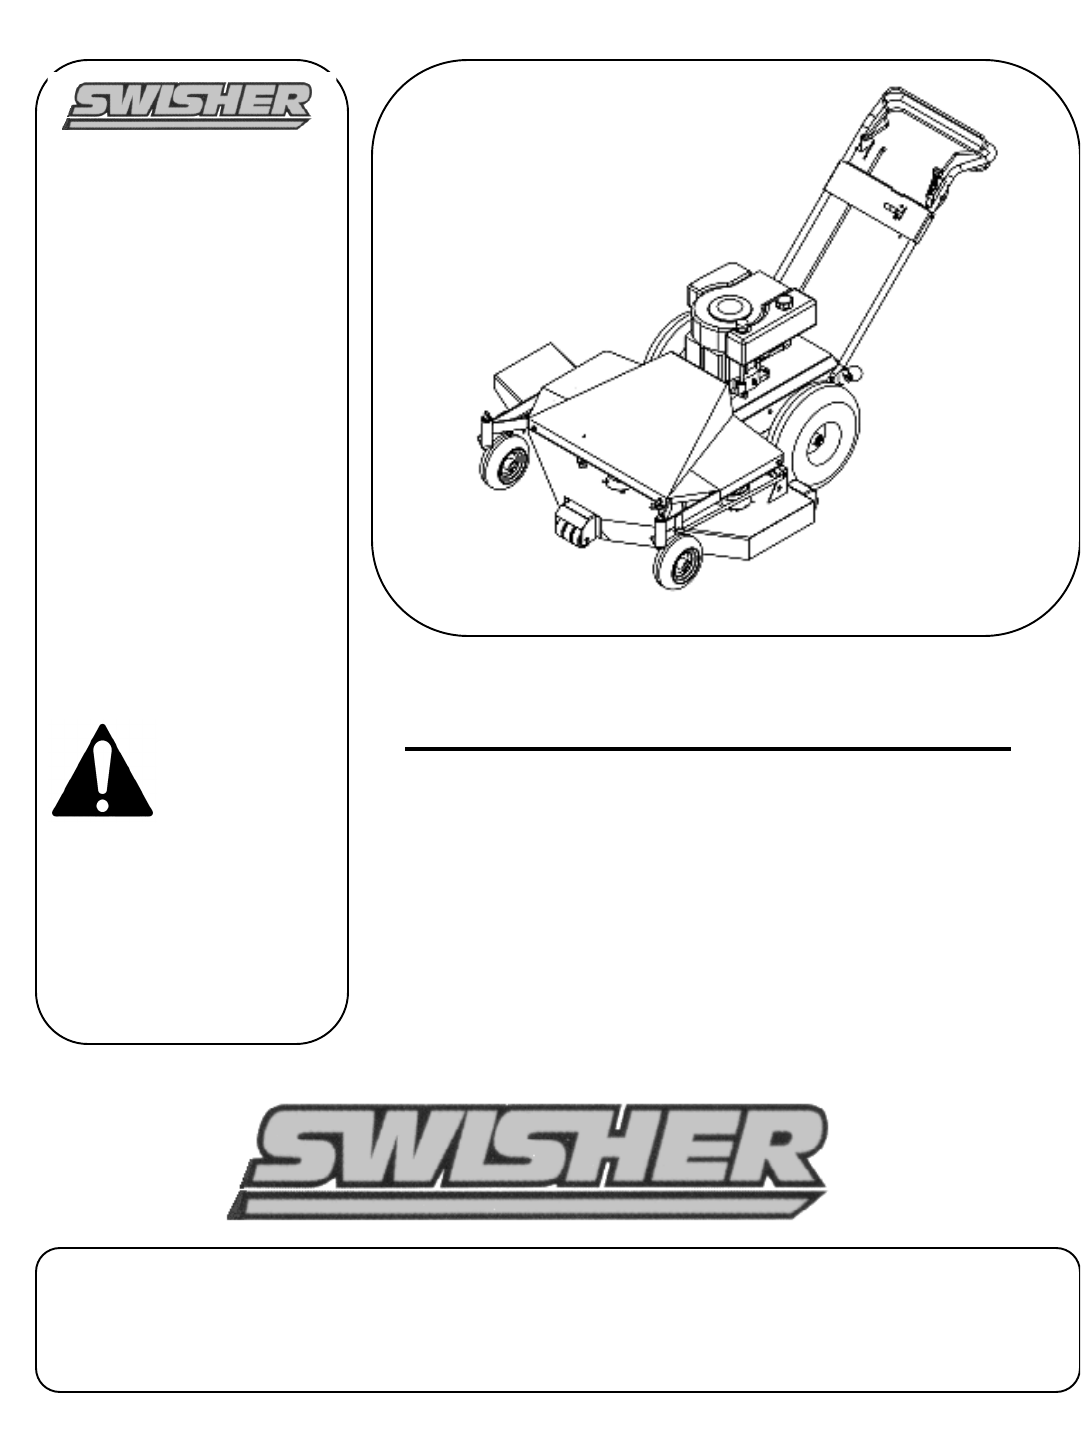 swisher lawn mower wb11542f user guide manualsonline com swisher 44 trail mower manual swisher trail mower parts list